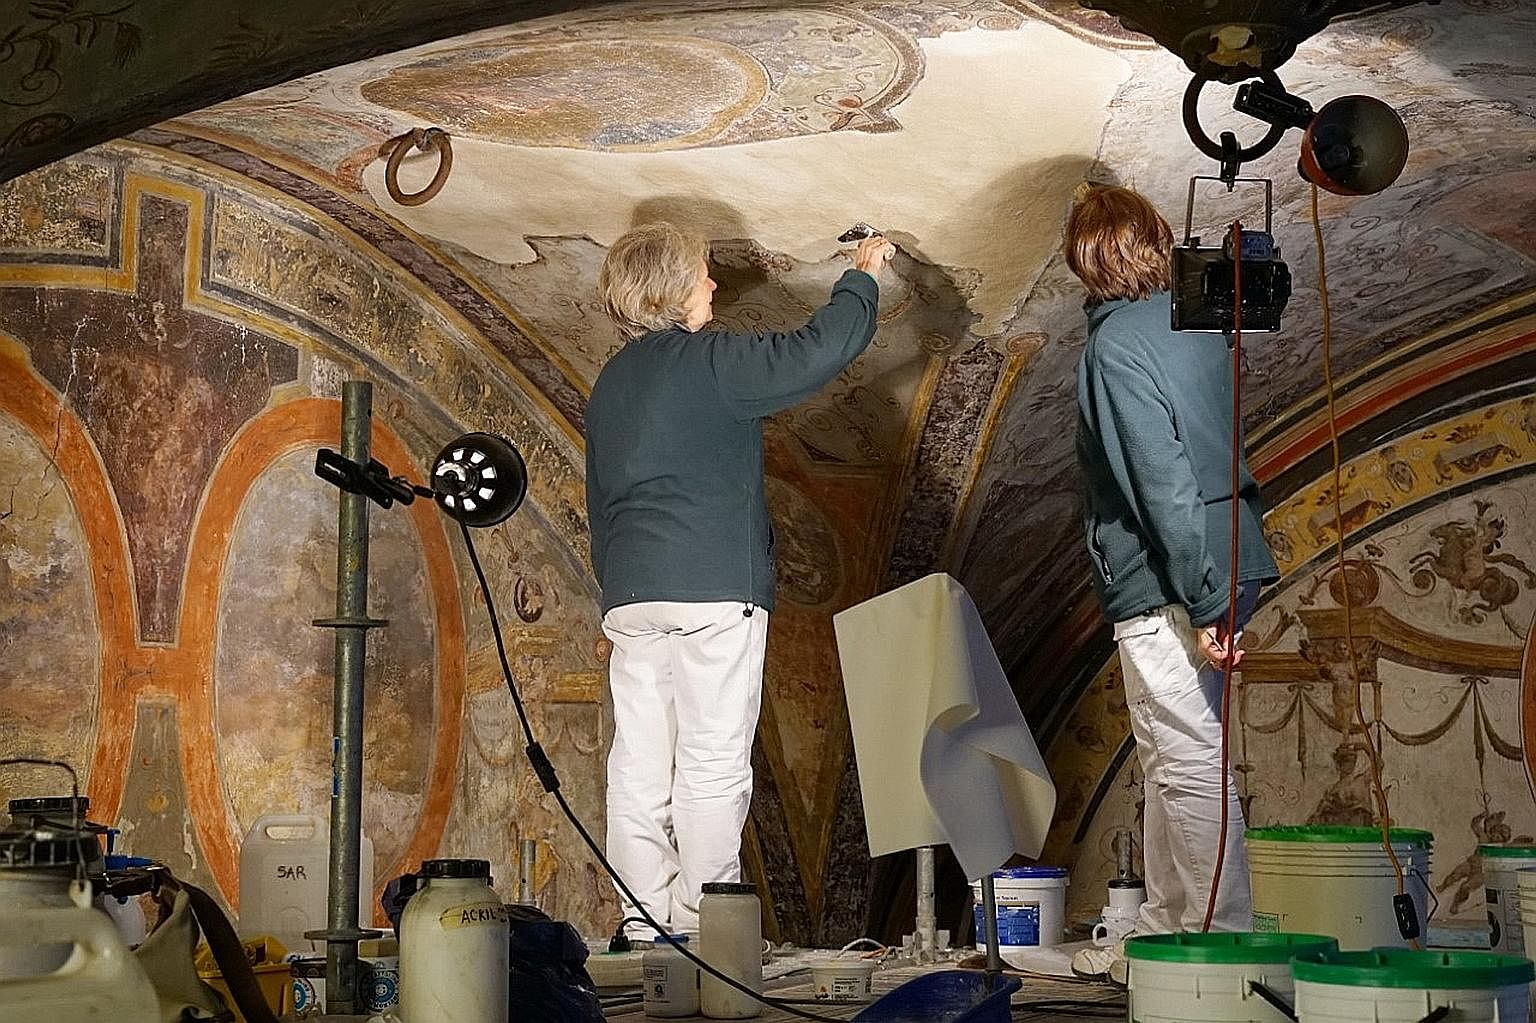 Japanese luxury fashion firm Kuipo's donation of €780,000 has made it possible for the Renaissance frescoes of the Michelozzo courtyard of Palazzo Vecchio to be restored. And for the first time in ages, visitors are allowed inside the burial chambe